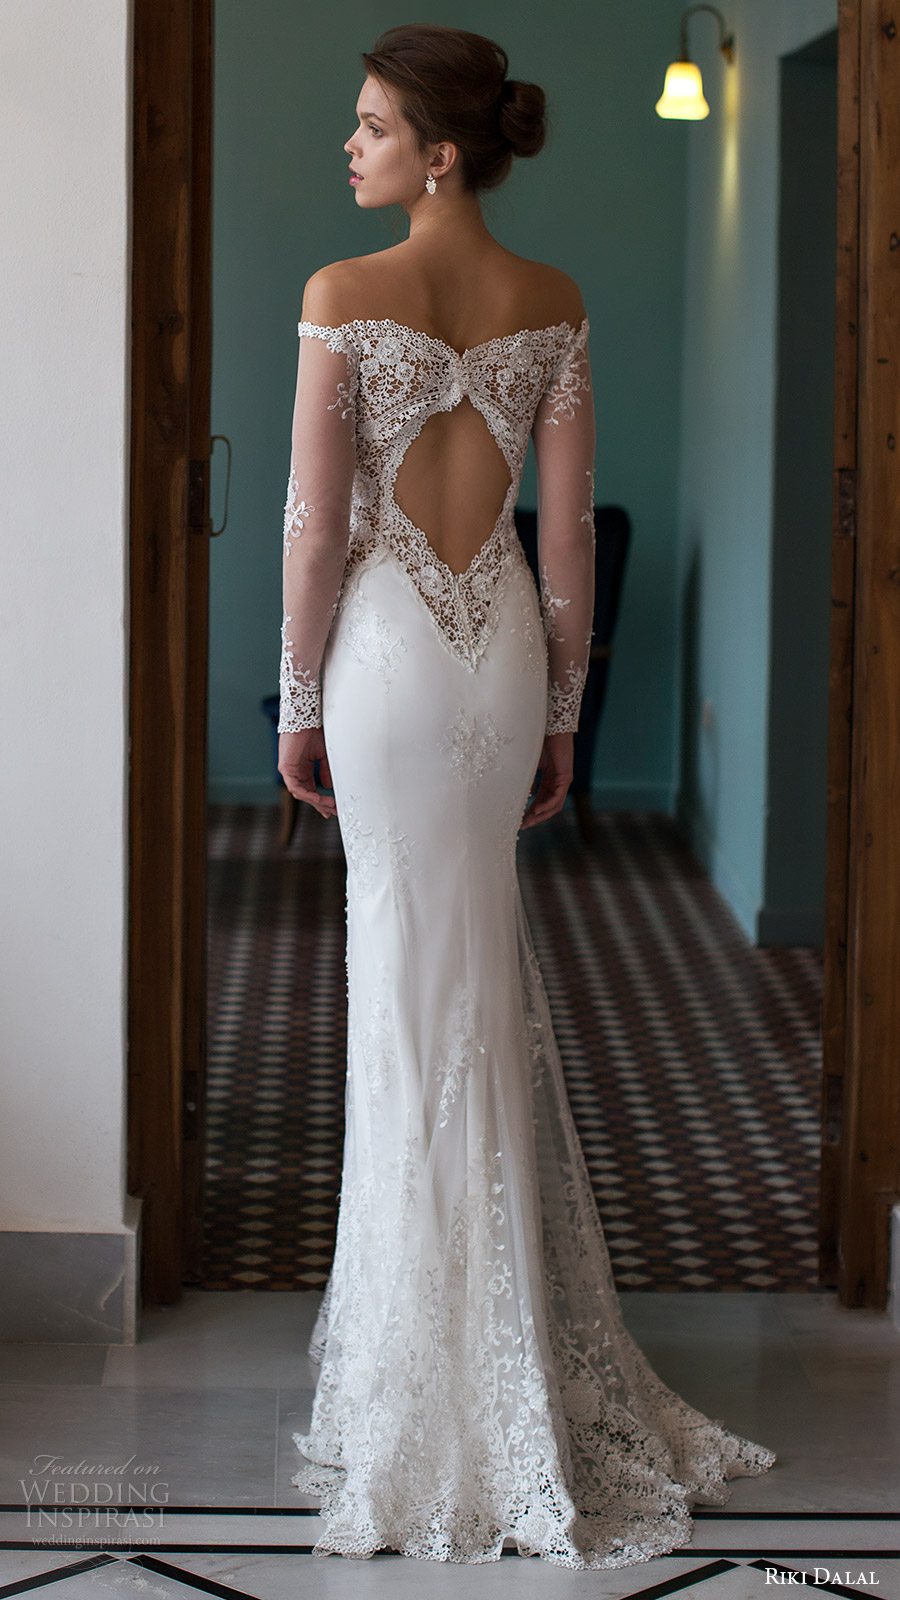 Riki Dalal 2016 Wedding Dresses Verona Bridal Collection Wedding Inspirasi